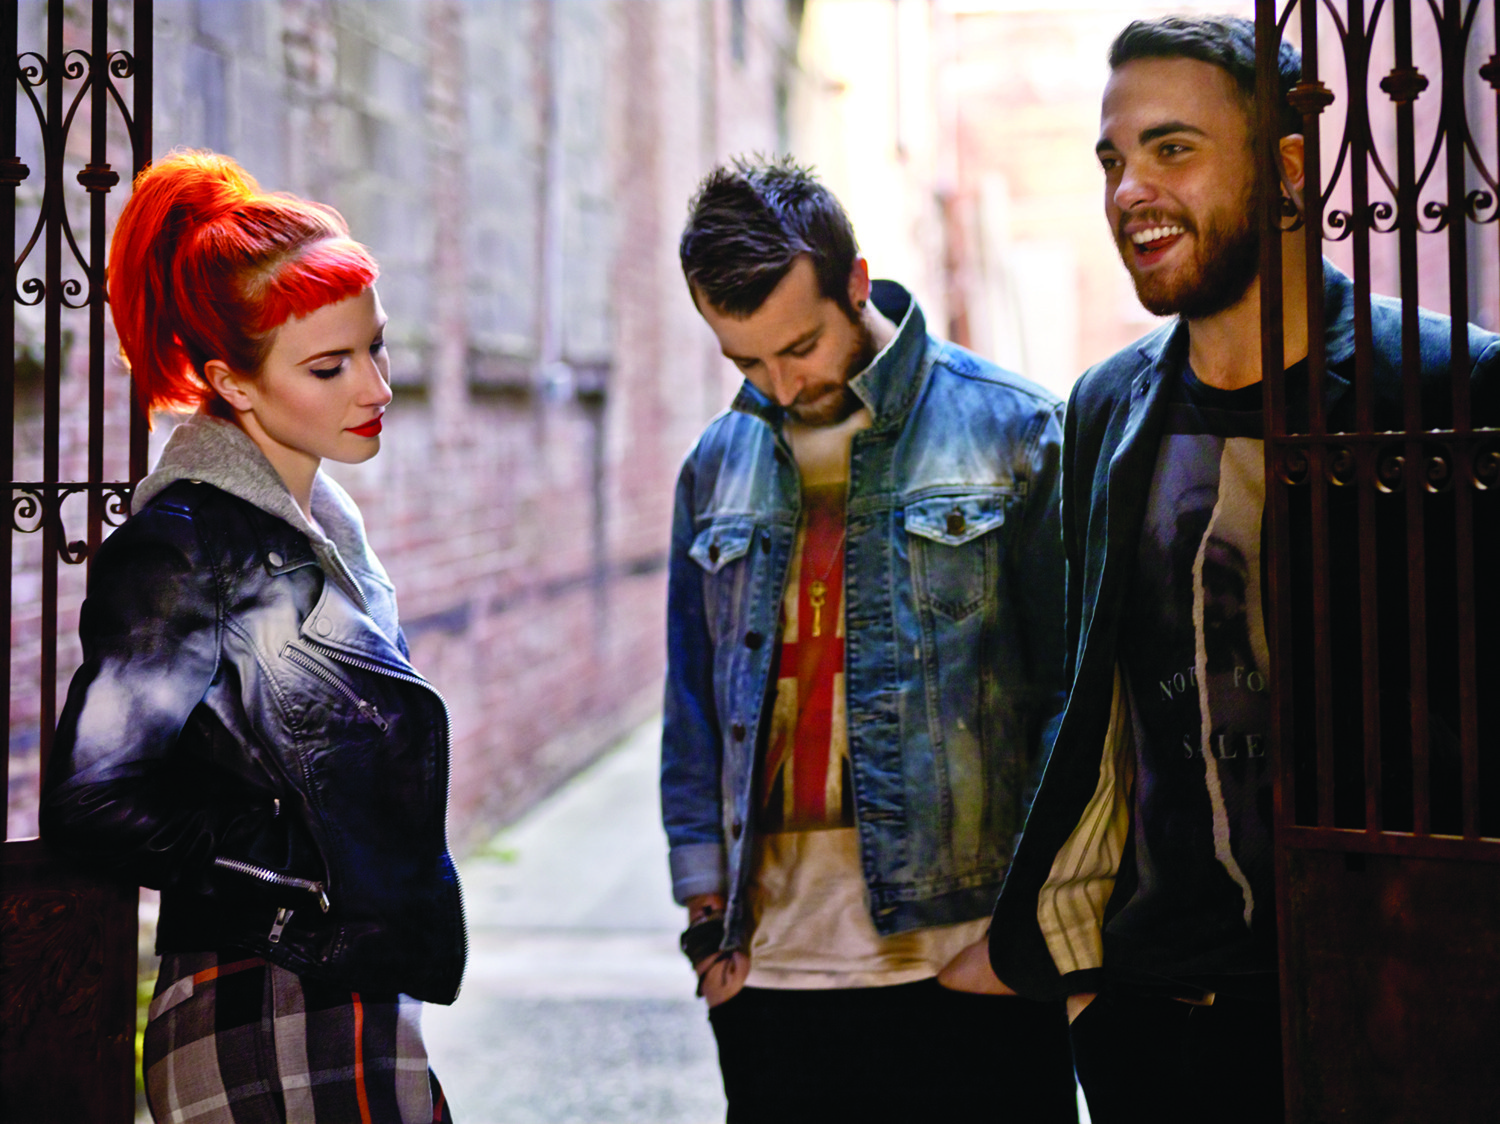 track hard times artist paramore album after